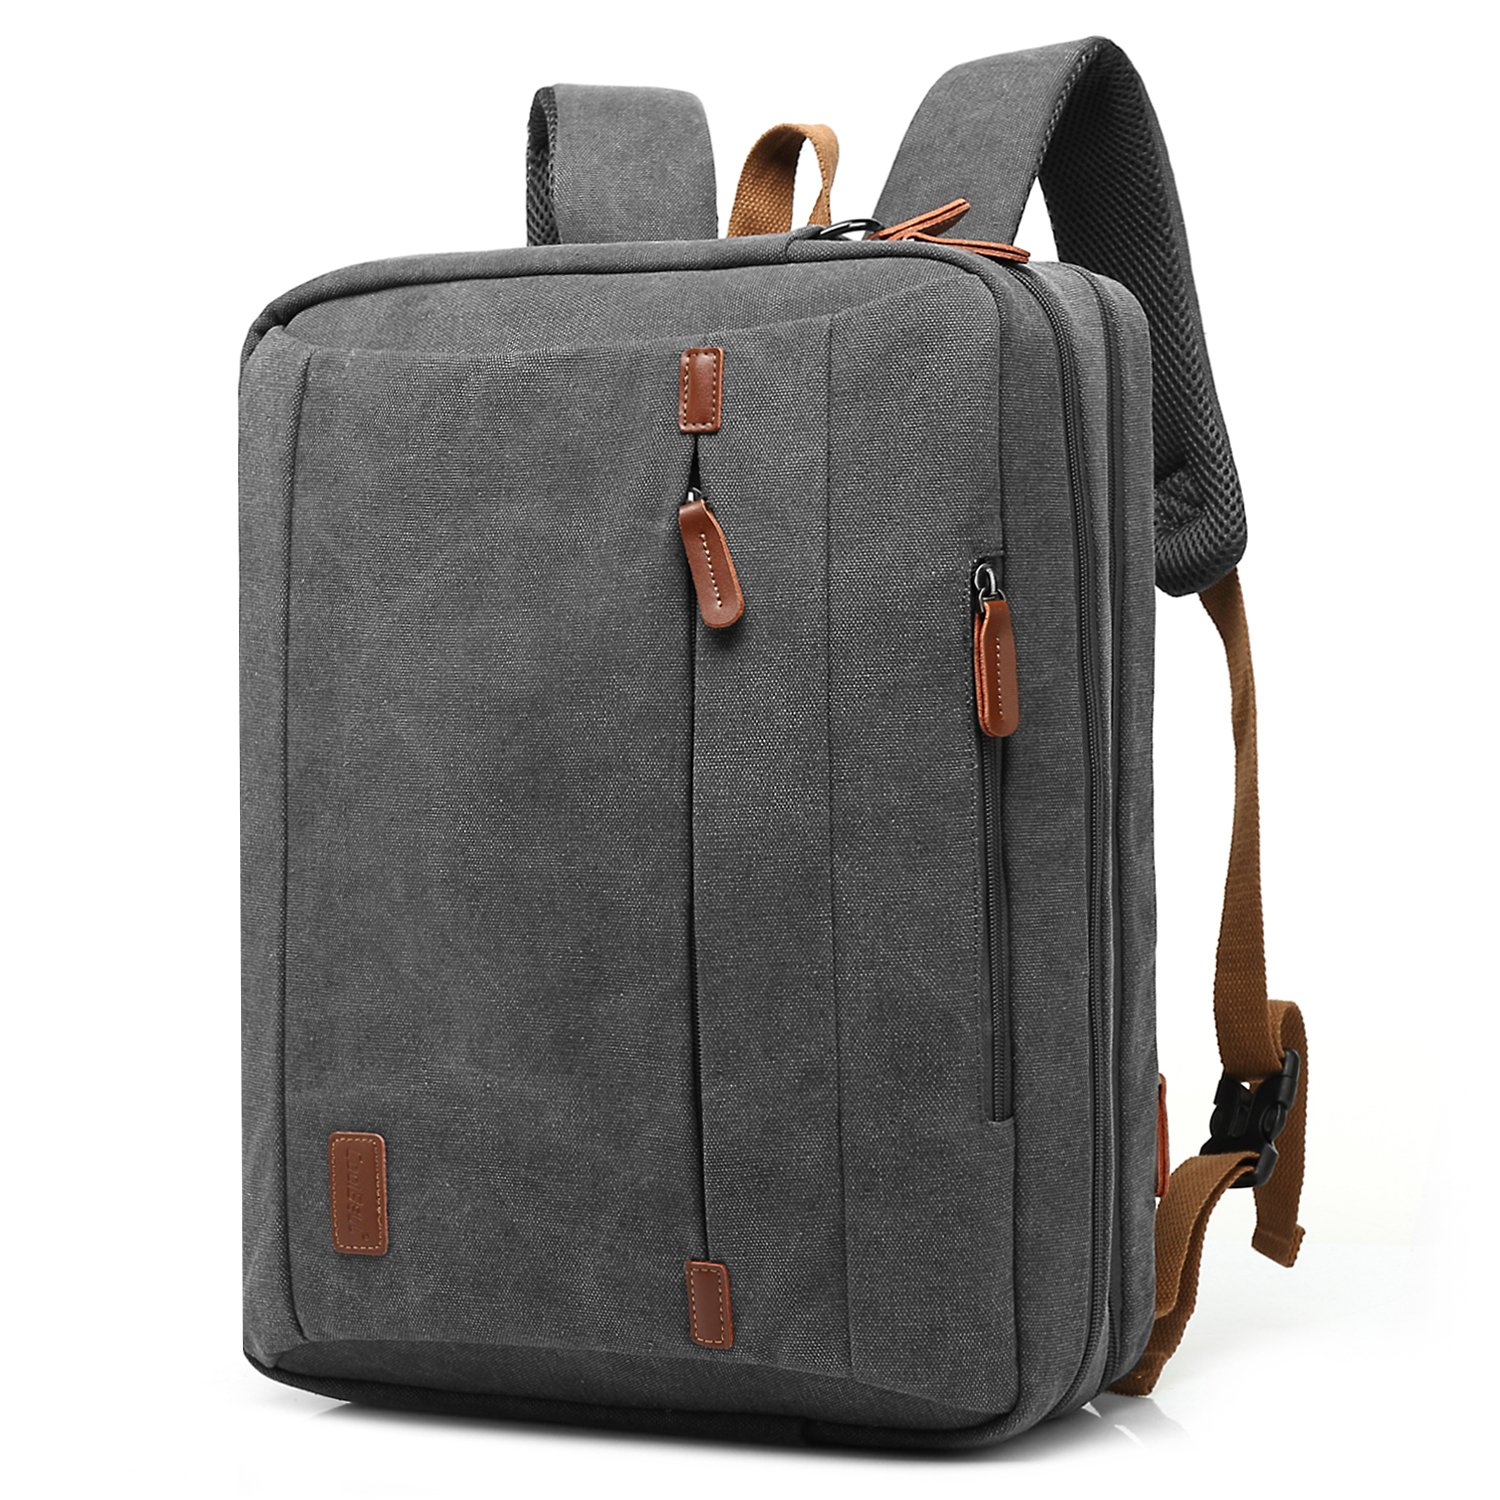 CoolBELL 17.3 Inches Convertible Laptop Messenger Bag Shoulder Bag Canvas Backpack Oxford Cloth Multi-Functional Briefcase For Laptop/Macbook/Tablet (Canvas Dark Grey)